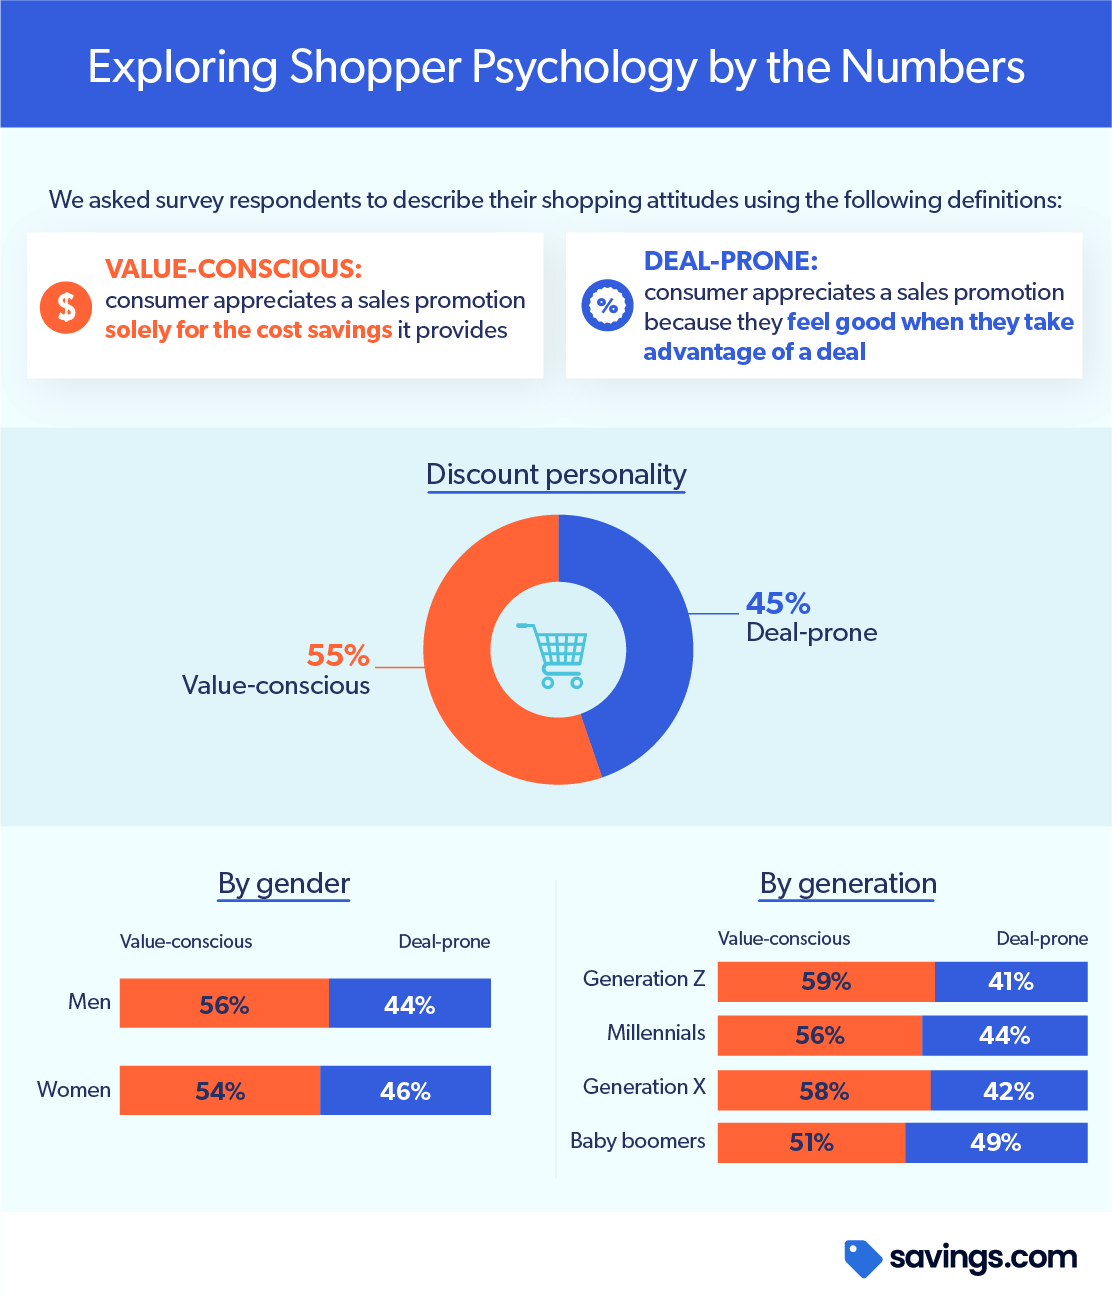 Chart Exploring Shopper Psychology by the Numbers